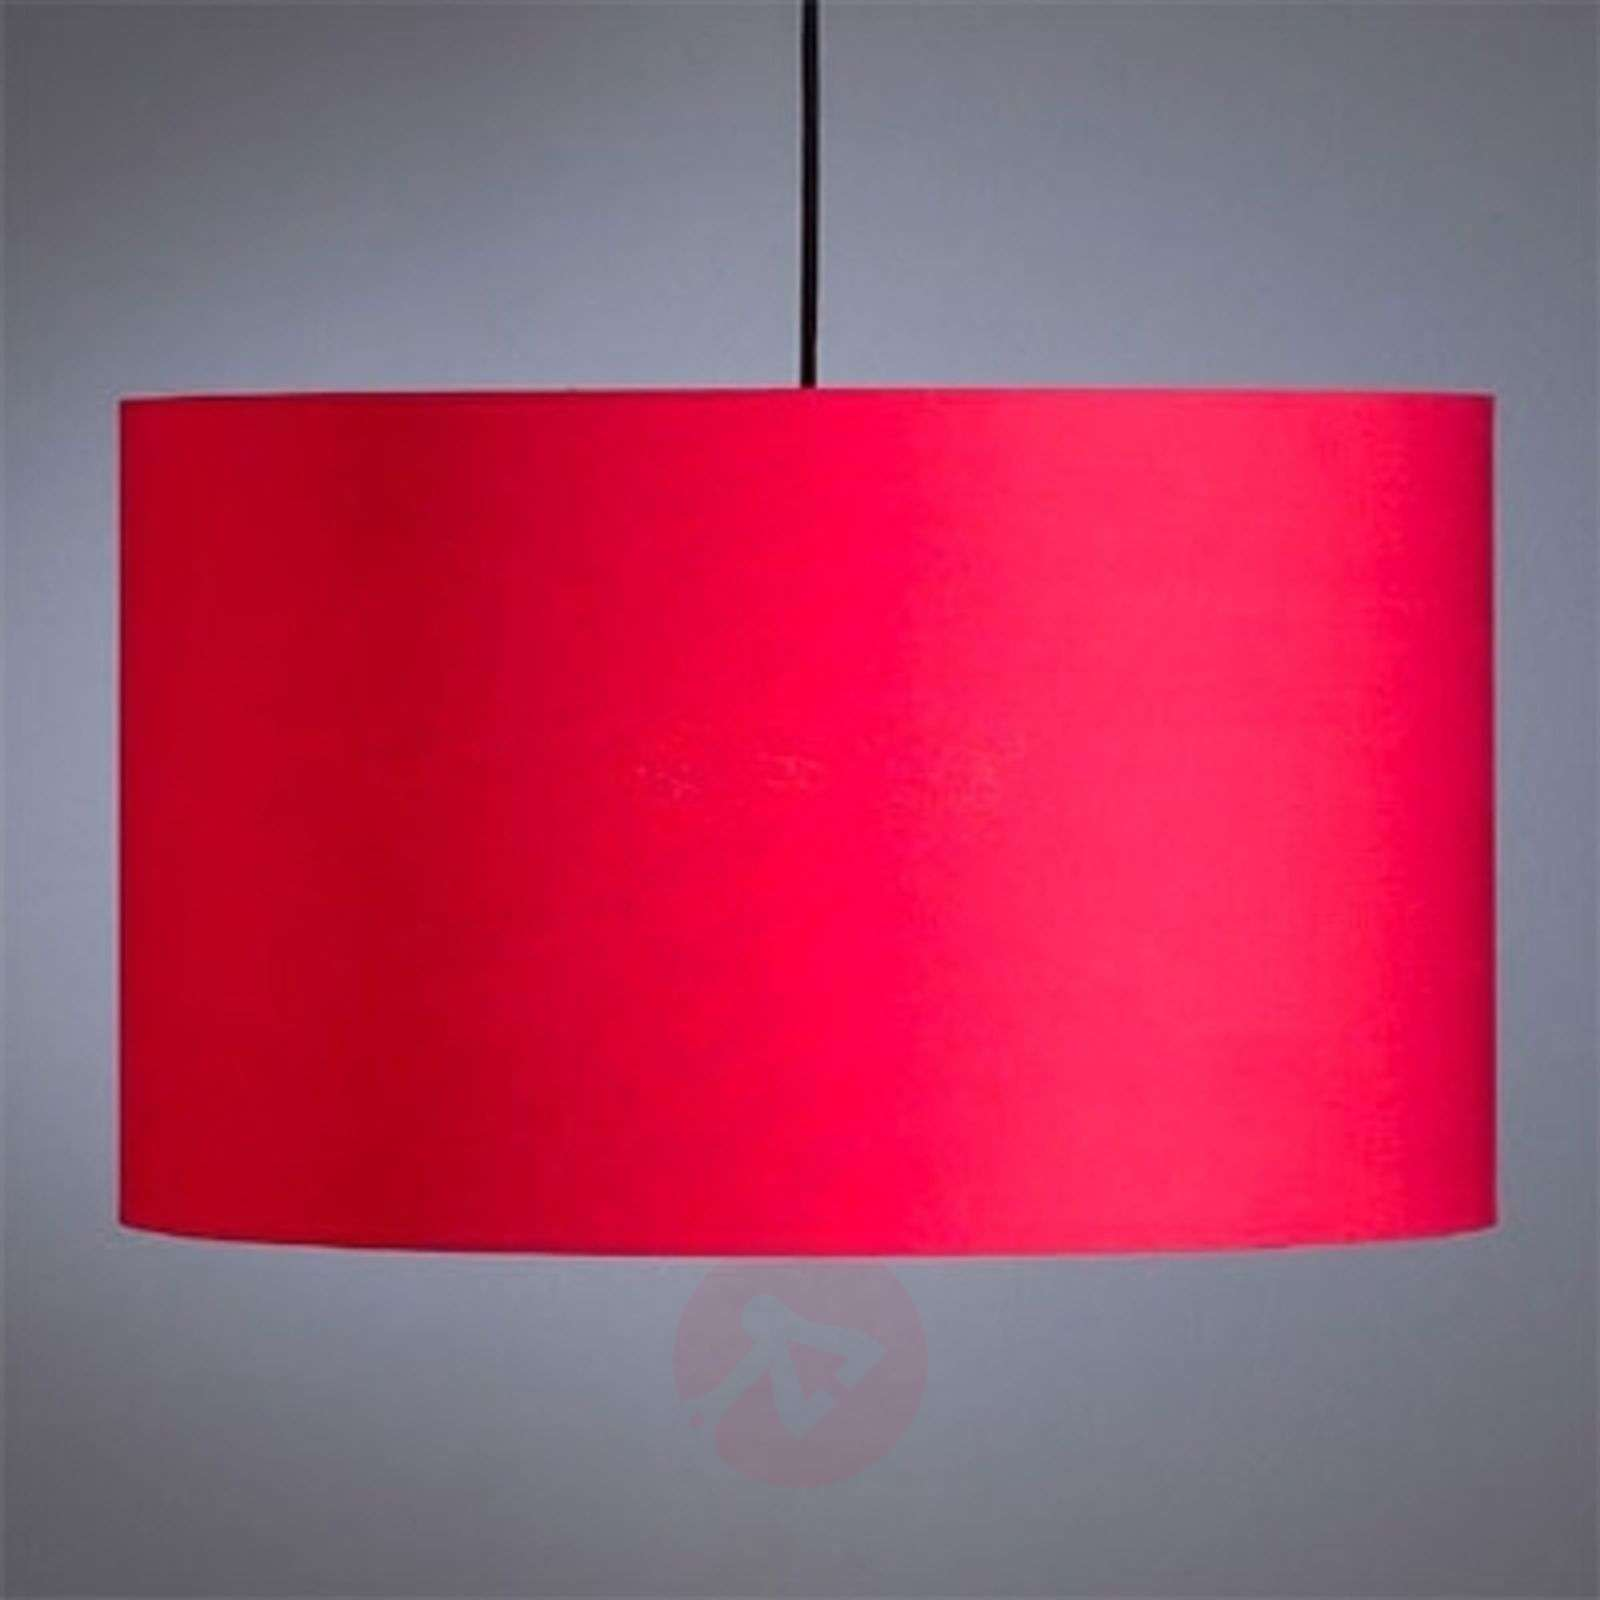 Red pendant light by Schnepel-9030173-01